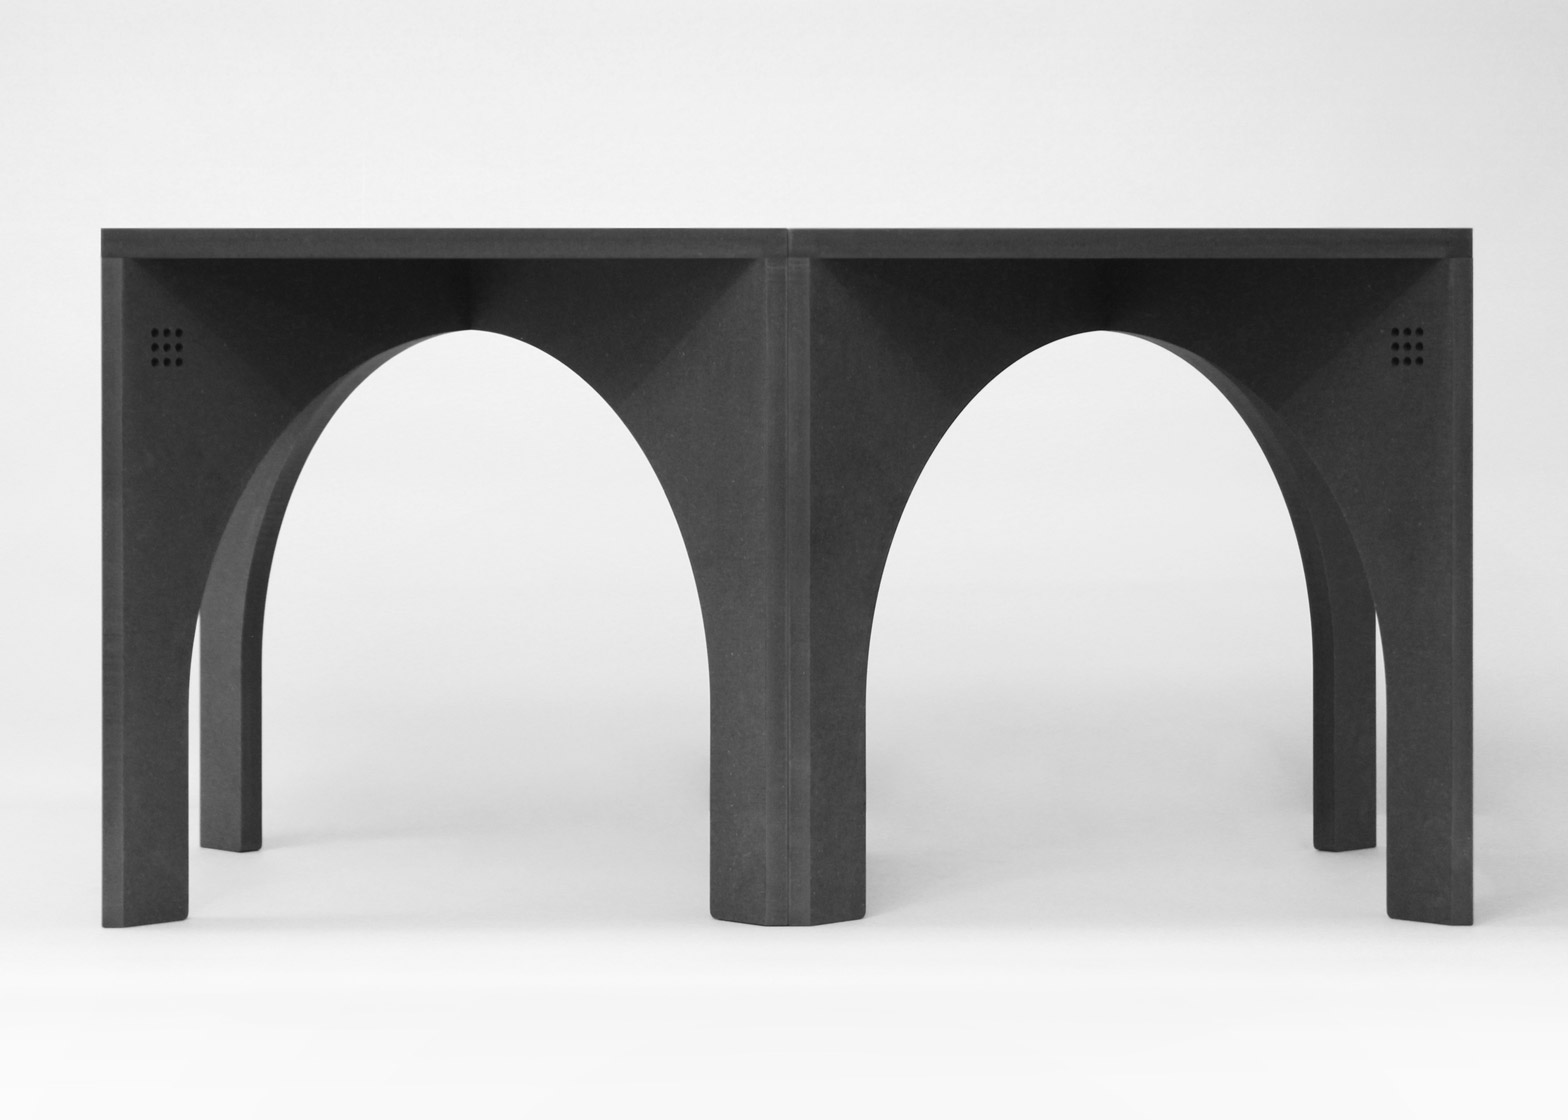 Arch Bundle by Graft Object